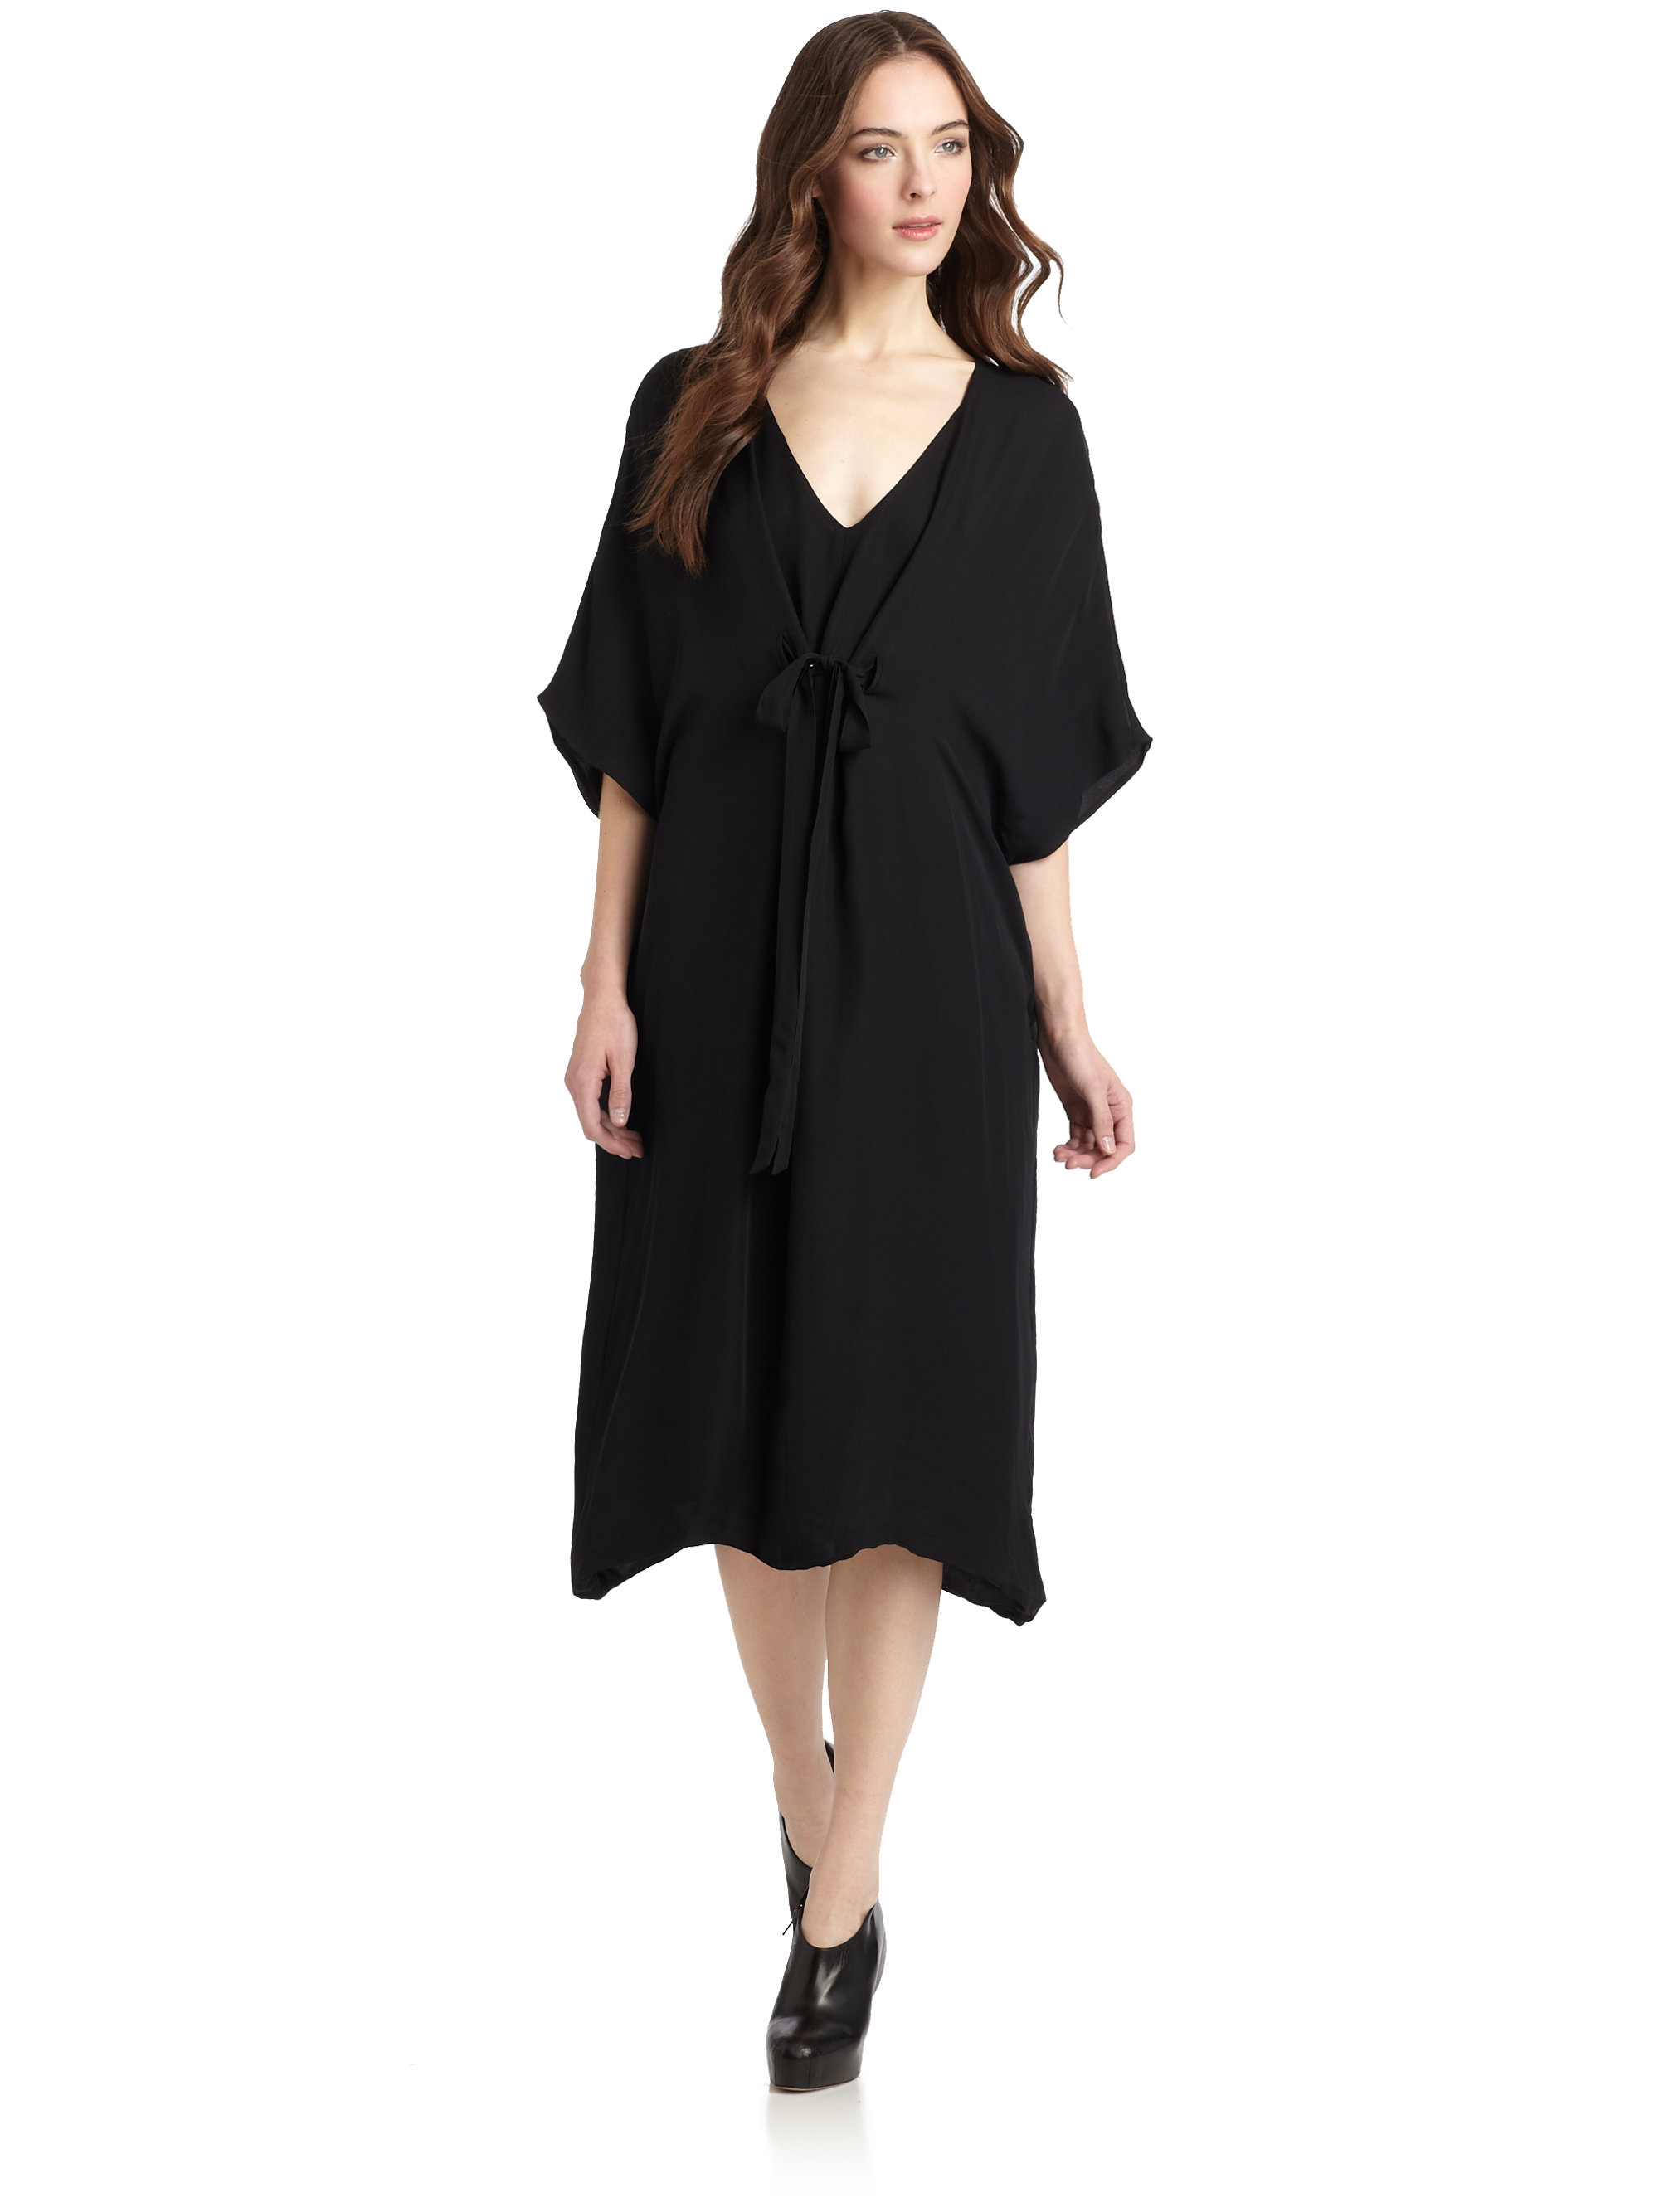 Lyst gar de silk caftan dress in black for Caftan avec satin de chaise